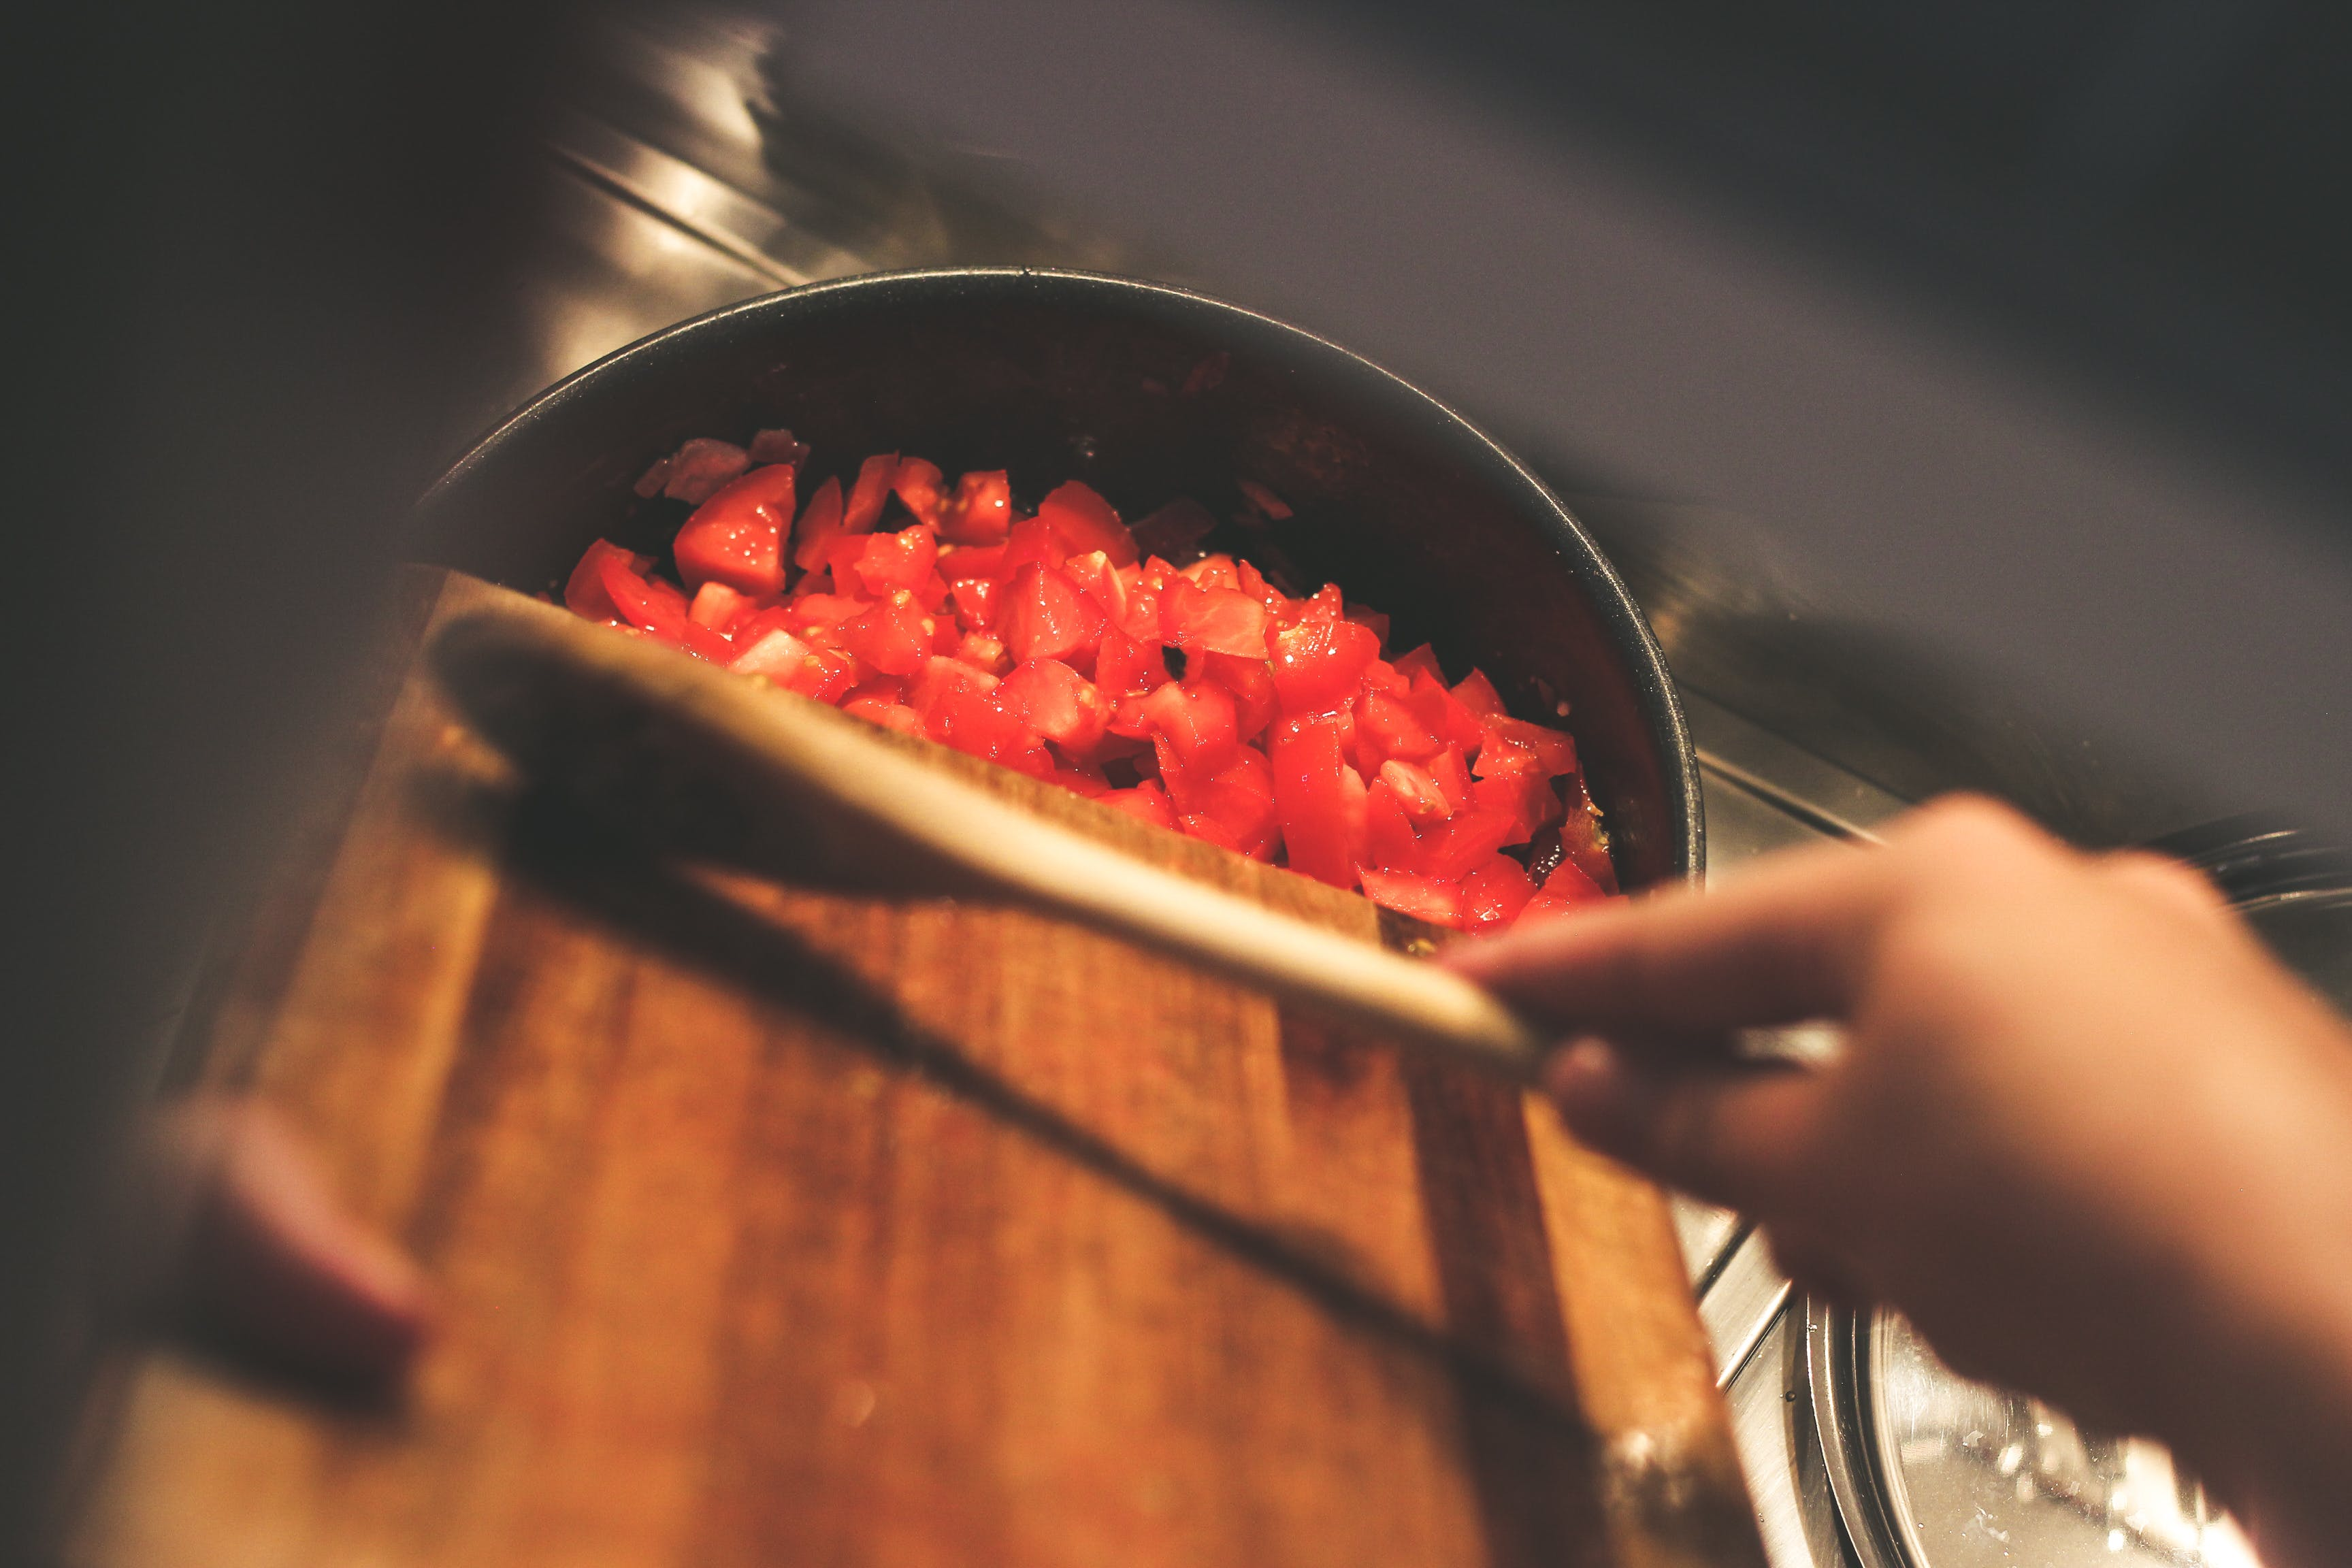 Free stock photo of food, tomatoes, cooking, preparation